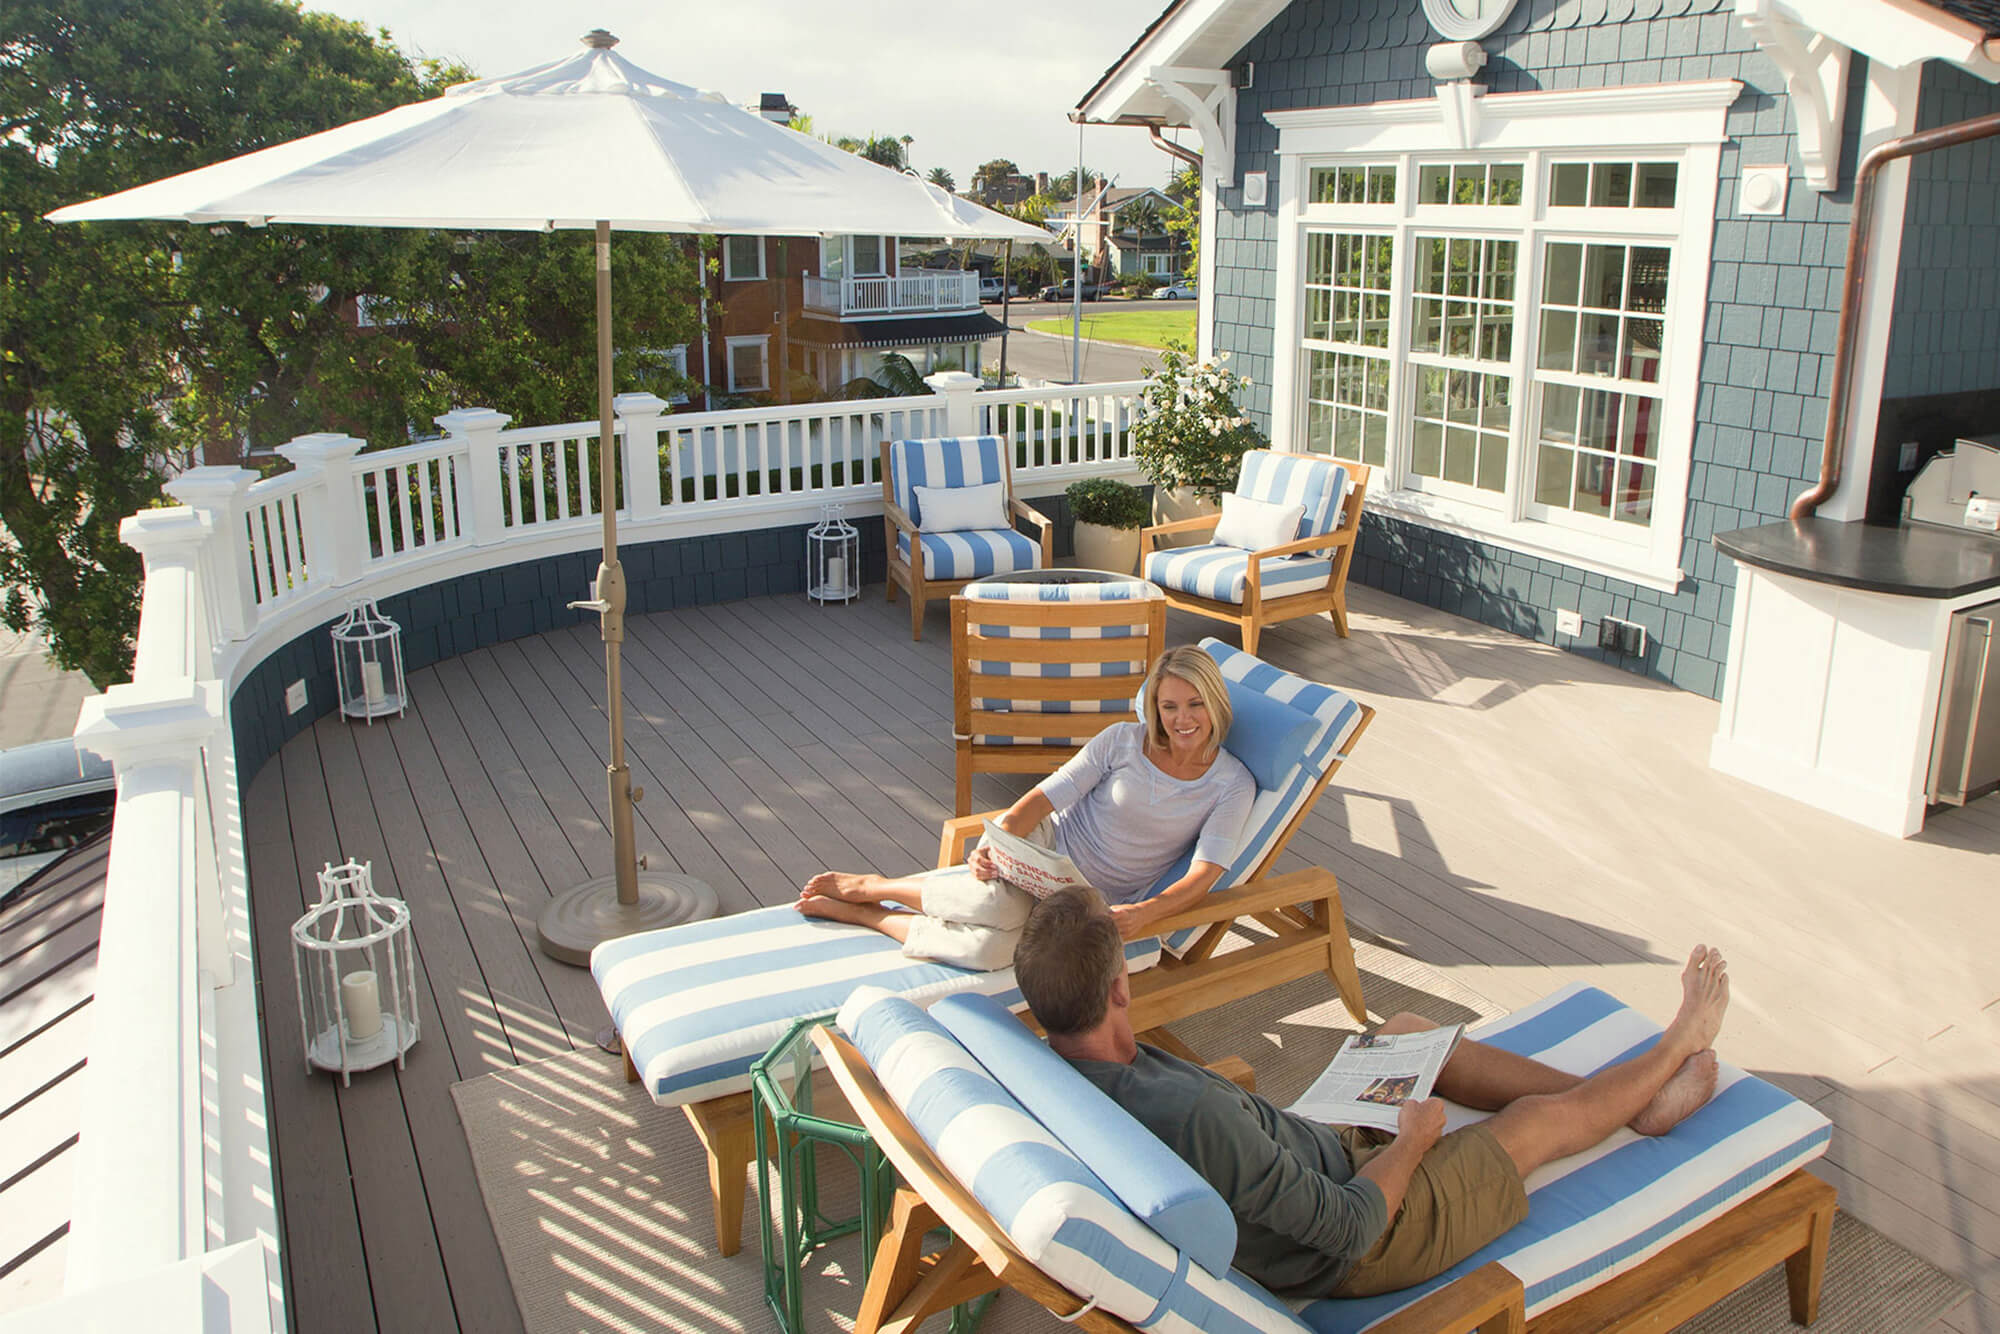 Couple lounging on outdoor furniture under umbrella on deck